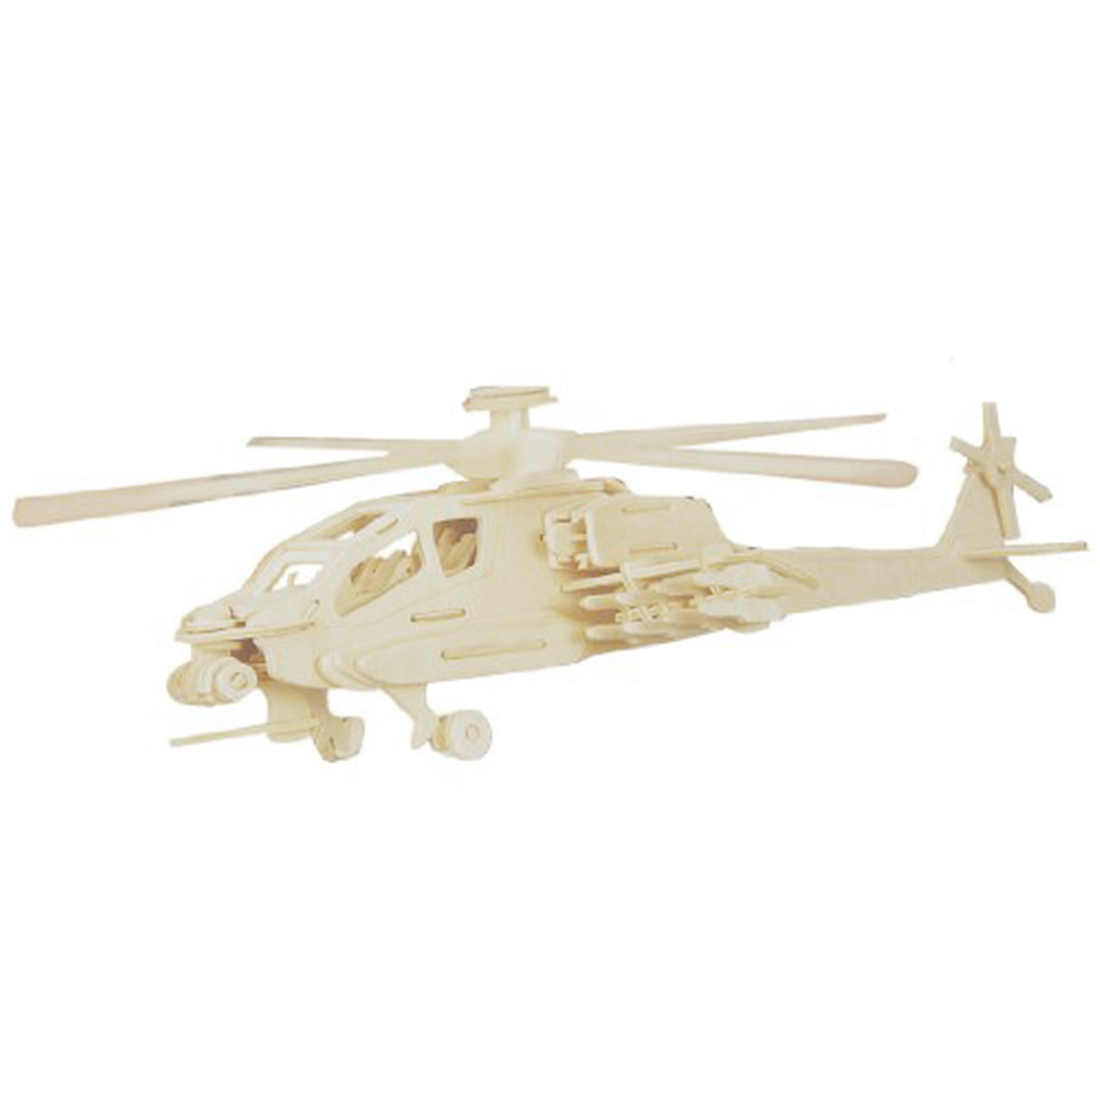 MACH New Child 3D Wooden Apache Model Woodcraft Construction Kit Puzzle Toy Gift